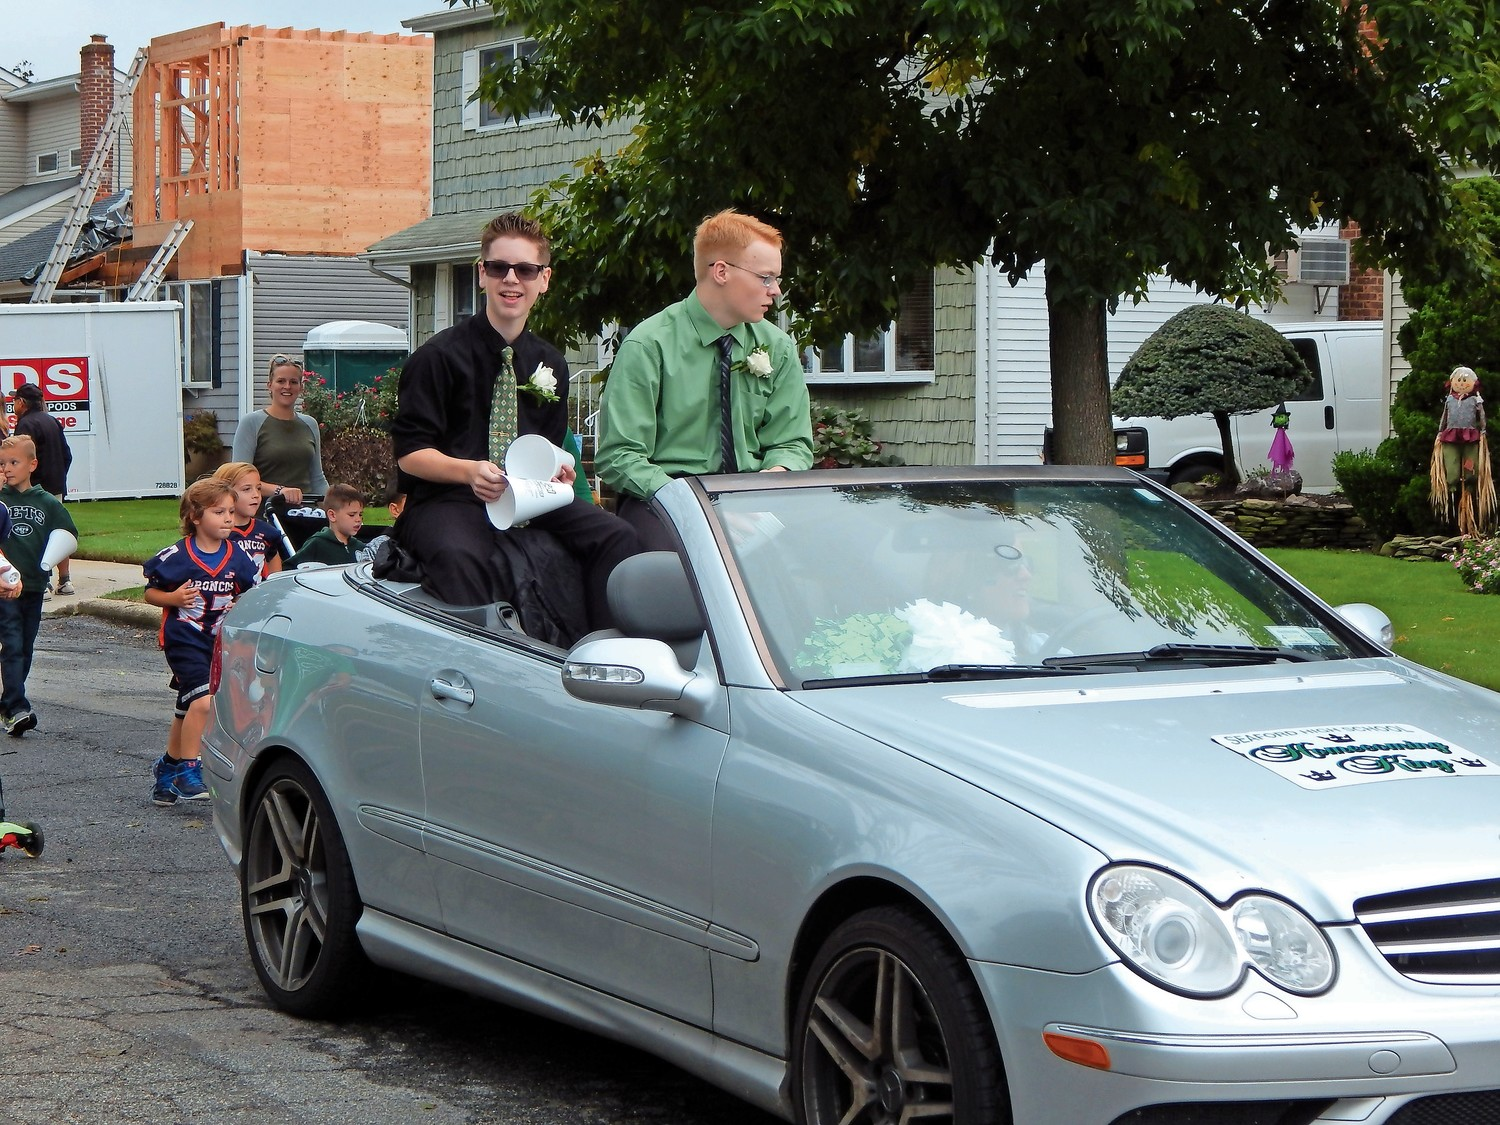 Candidates for homecoming King made their way down Washington Ave. in Seaford.